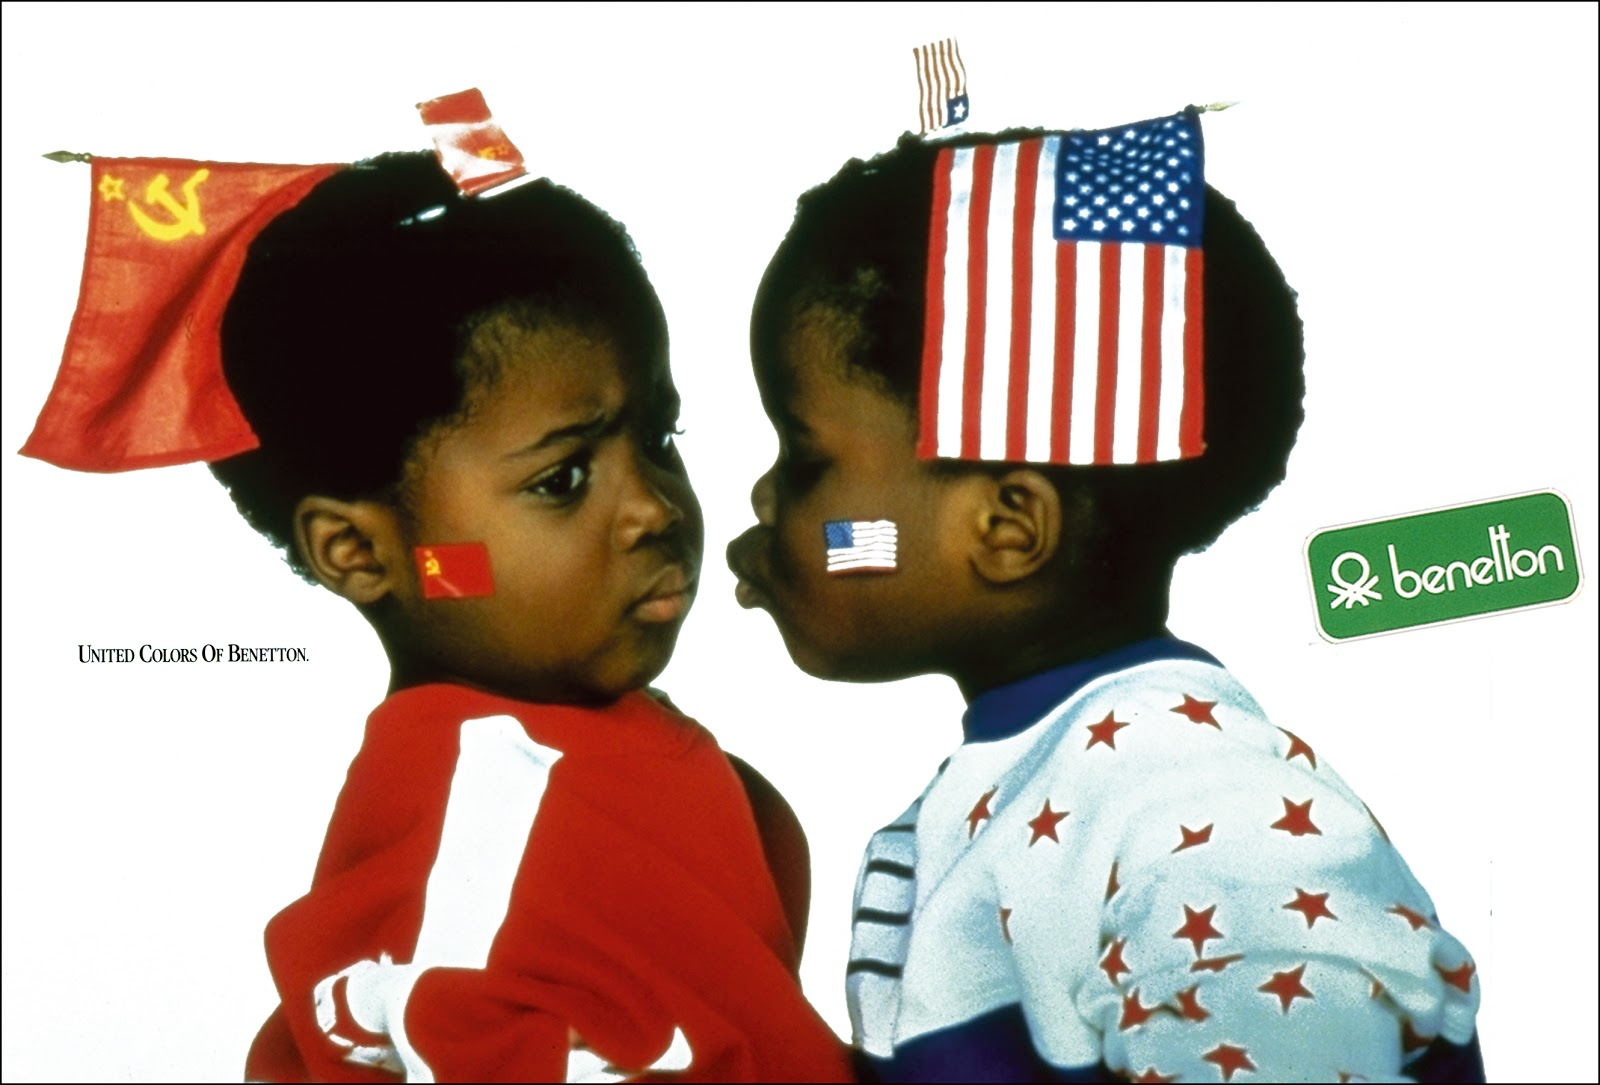 Wonders of the history of graphic design visual for United colors of benetton usa